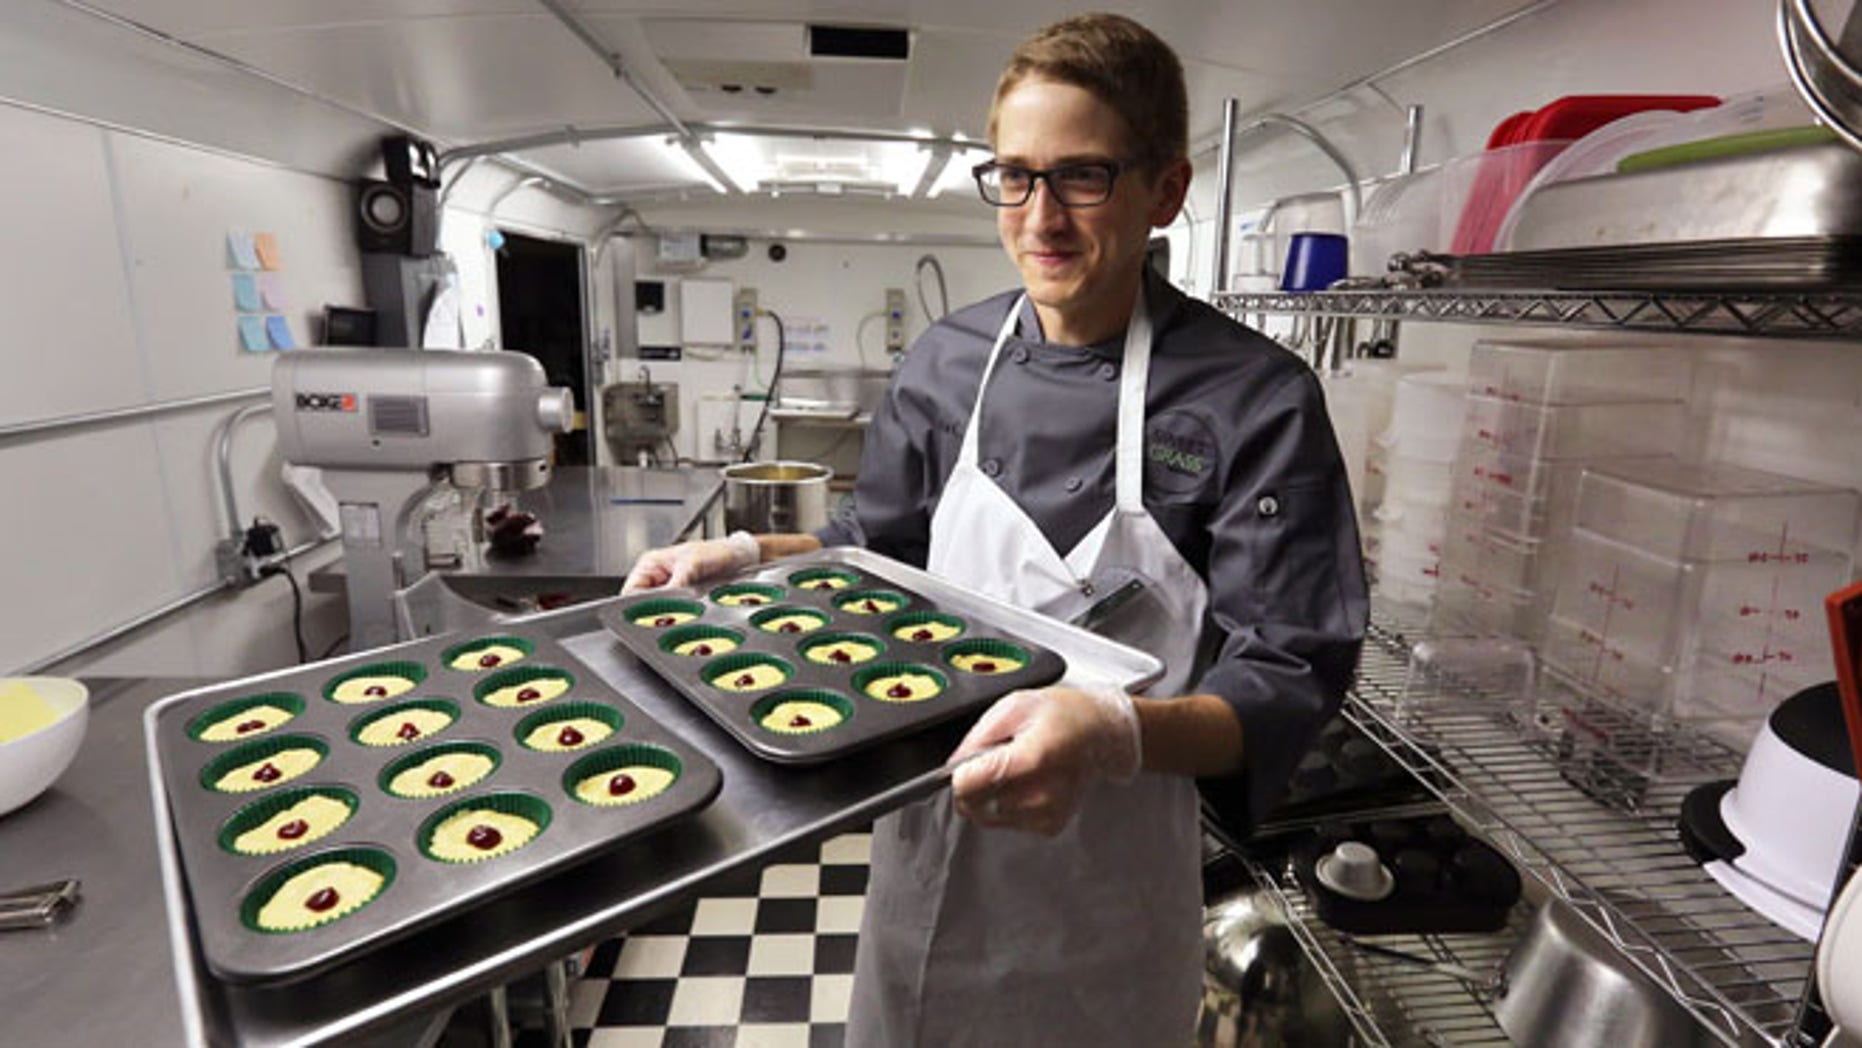 June 19, 2014: Chef Alex Tretter carries a tray of cannabis-infused peanut butter and jelly cups to the oven for baking at Sweet Grass Kitchen, a well-established Denver-based gourmet marijuana edibles bakery which sells its confections to retail outlets throughout the state.